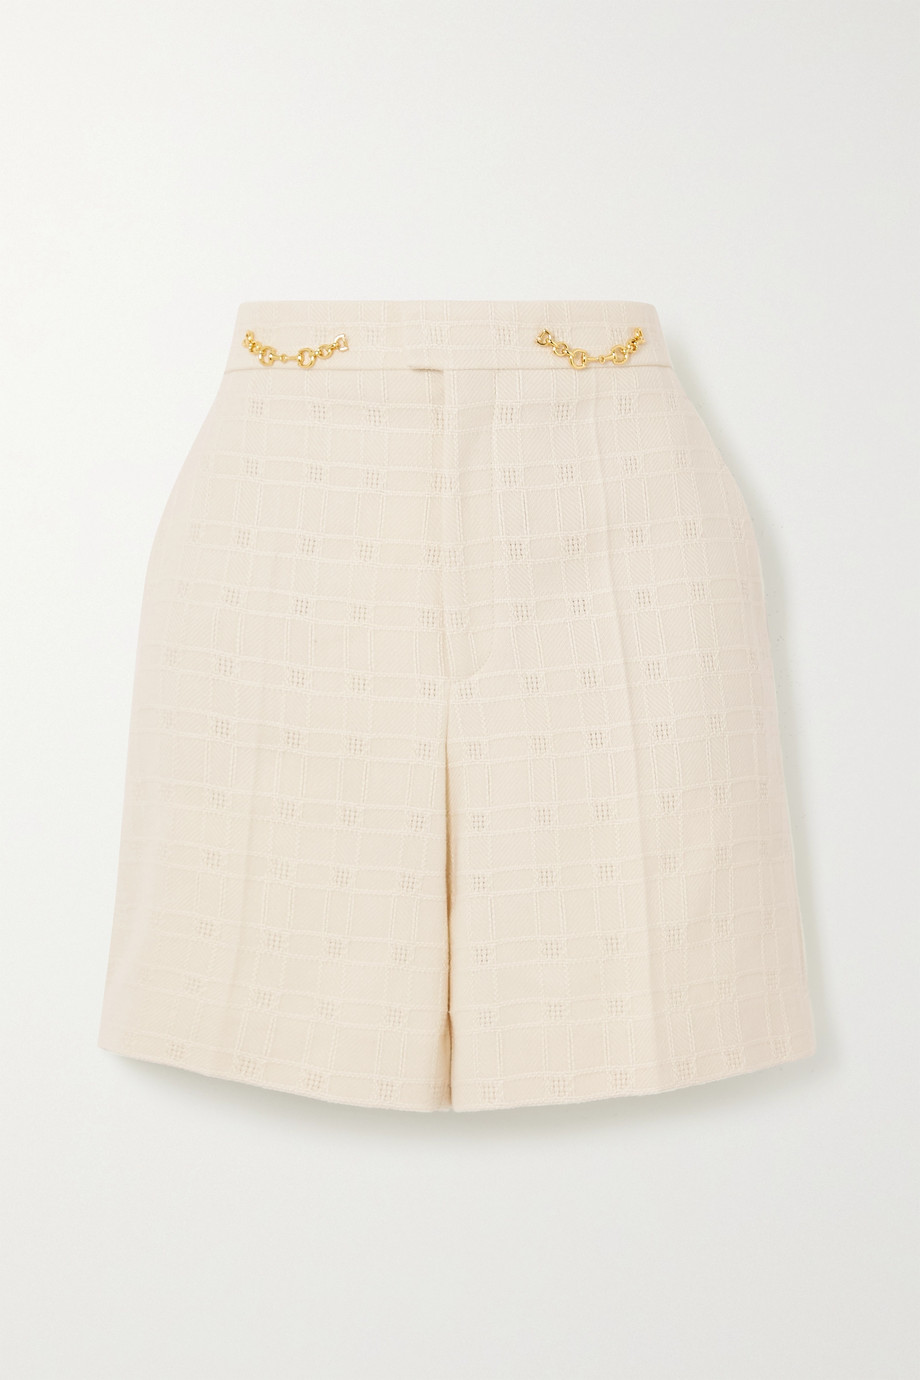 GUCCI Horsebit-detailed cotton and wool-blend jacquard shorts